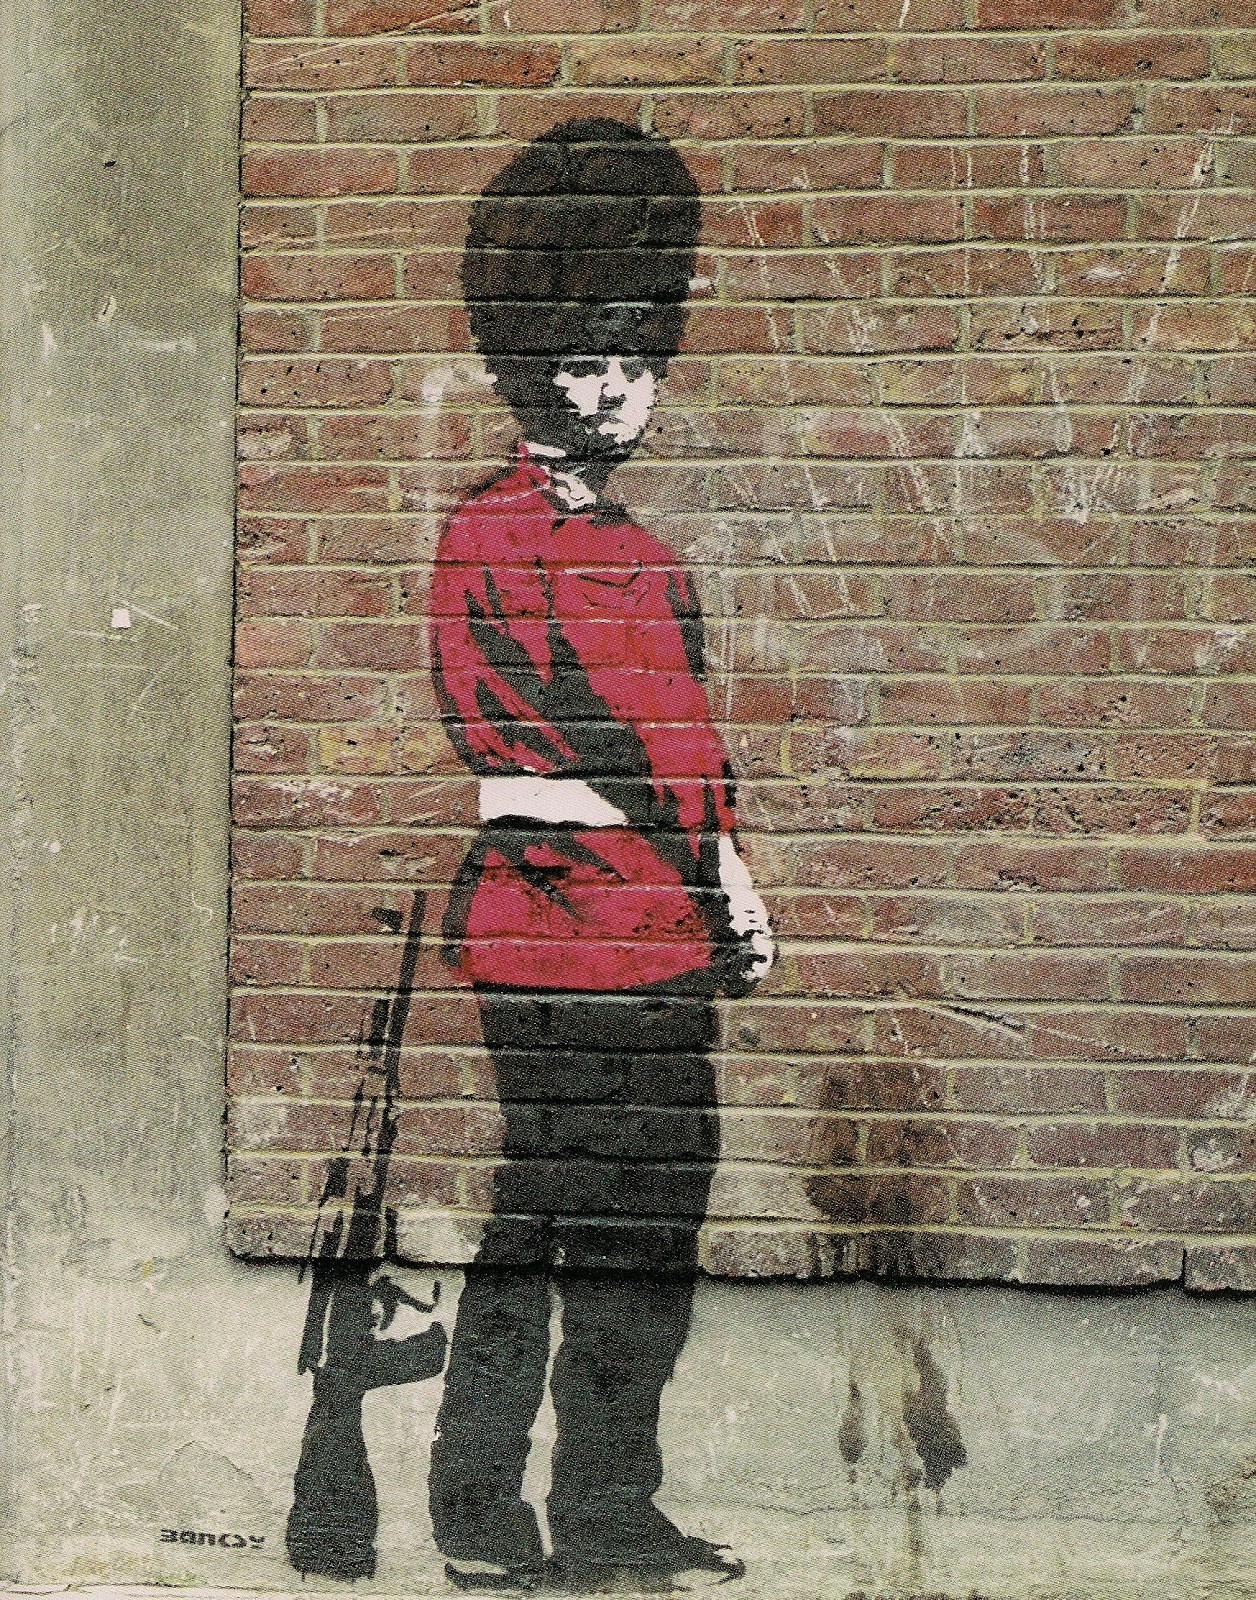 Iphone X See Through Wallpaper Hd My Lovely Surroundings September Book Review Banksy Wall